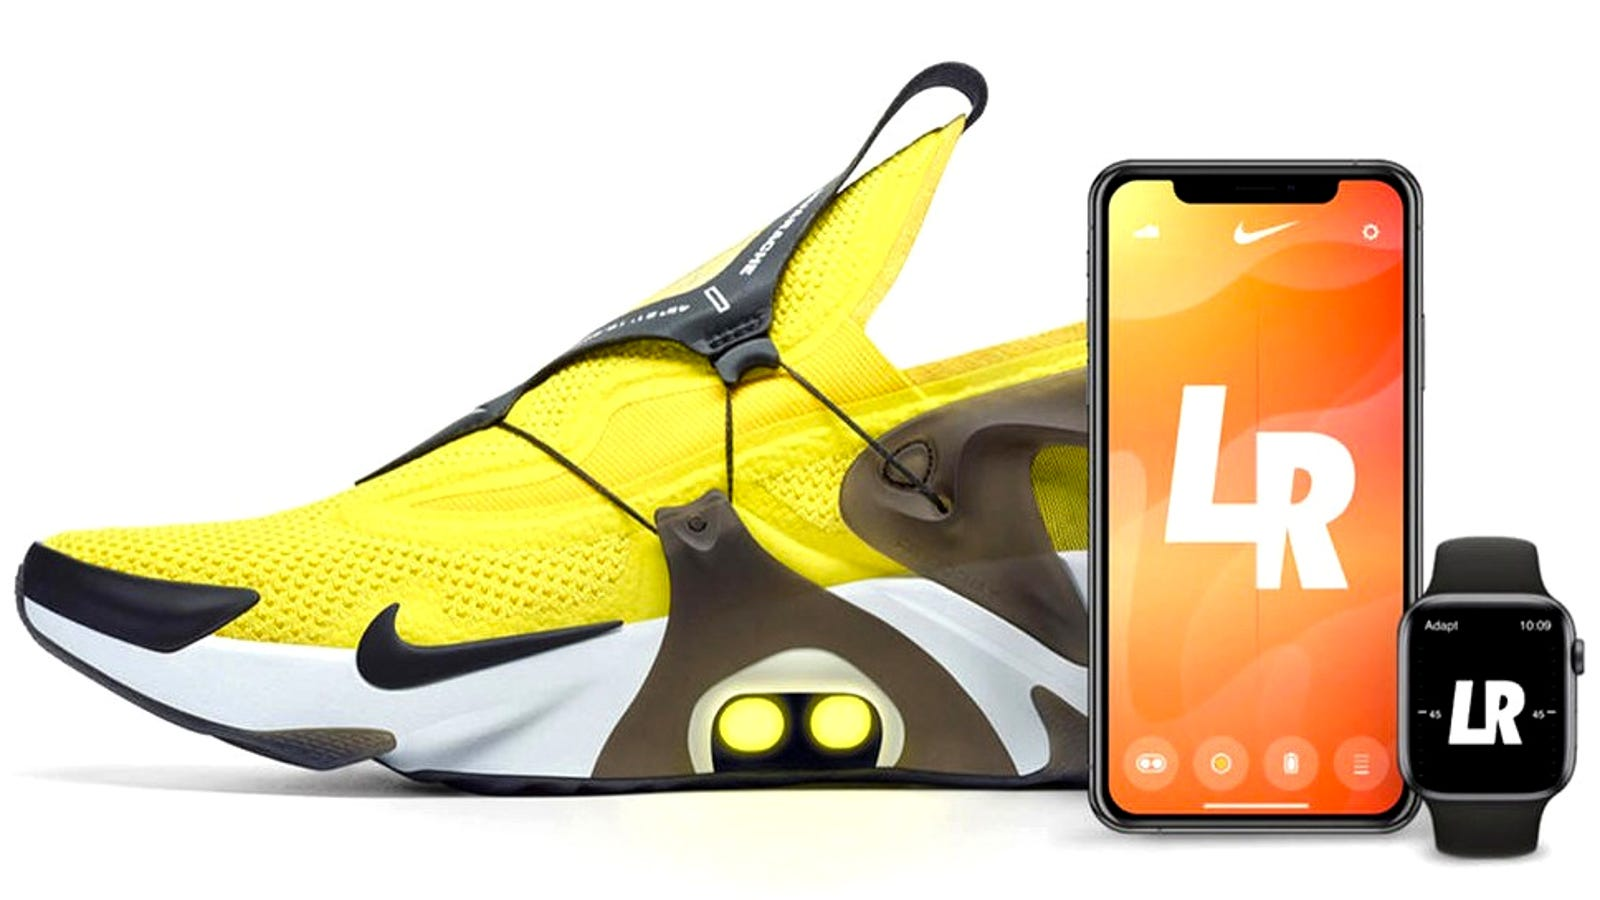 You Can Now Tell Siri to Tighten Your Nike Self-Lacing Sneakers